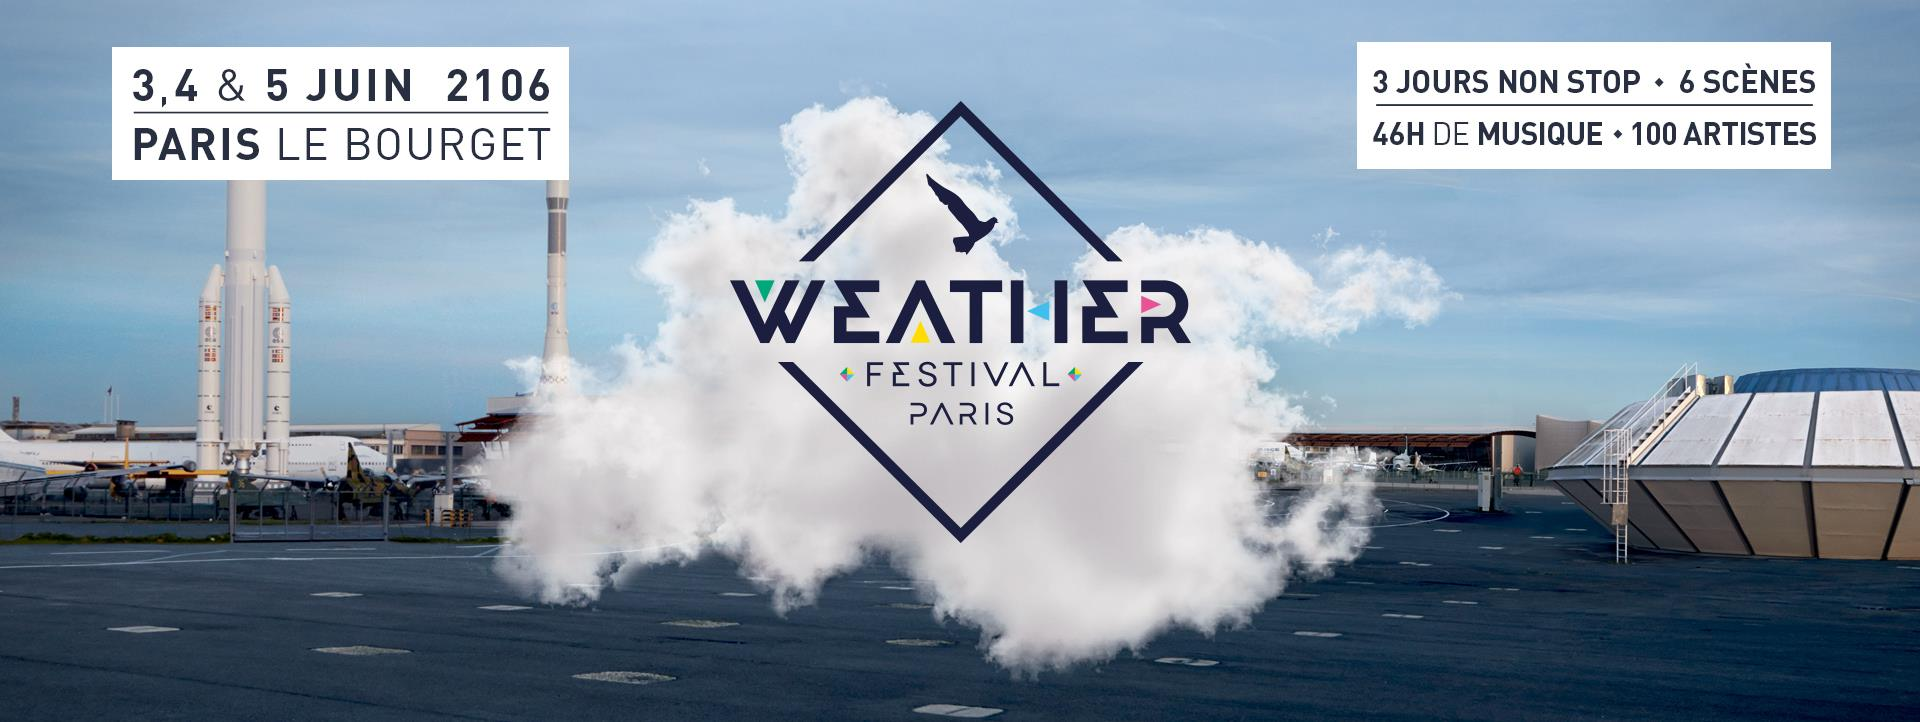 Weather Paris Festival 2016 – De la pelouse au tarmac…